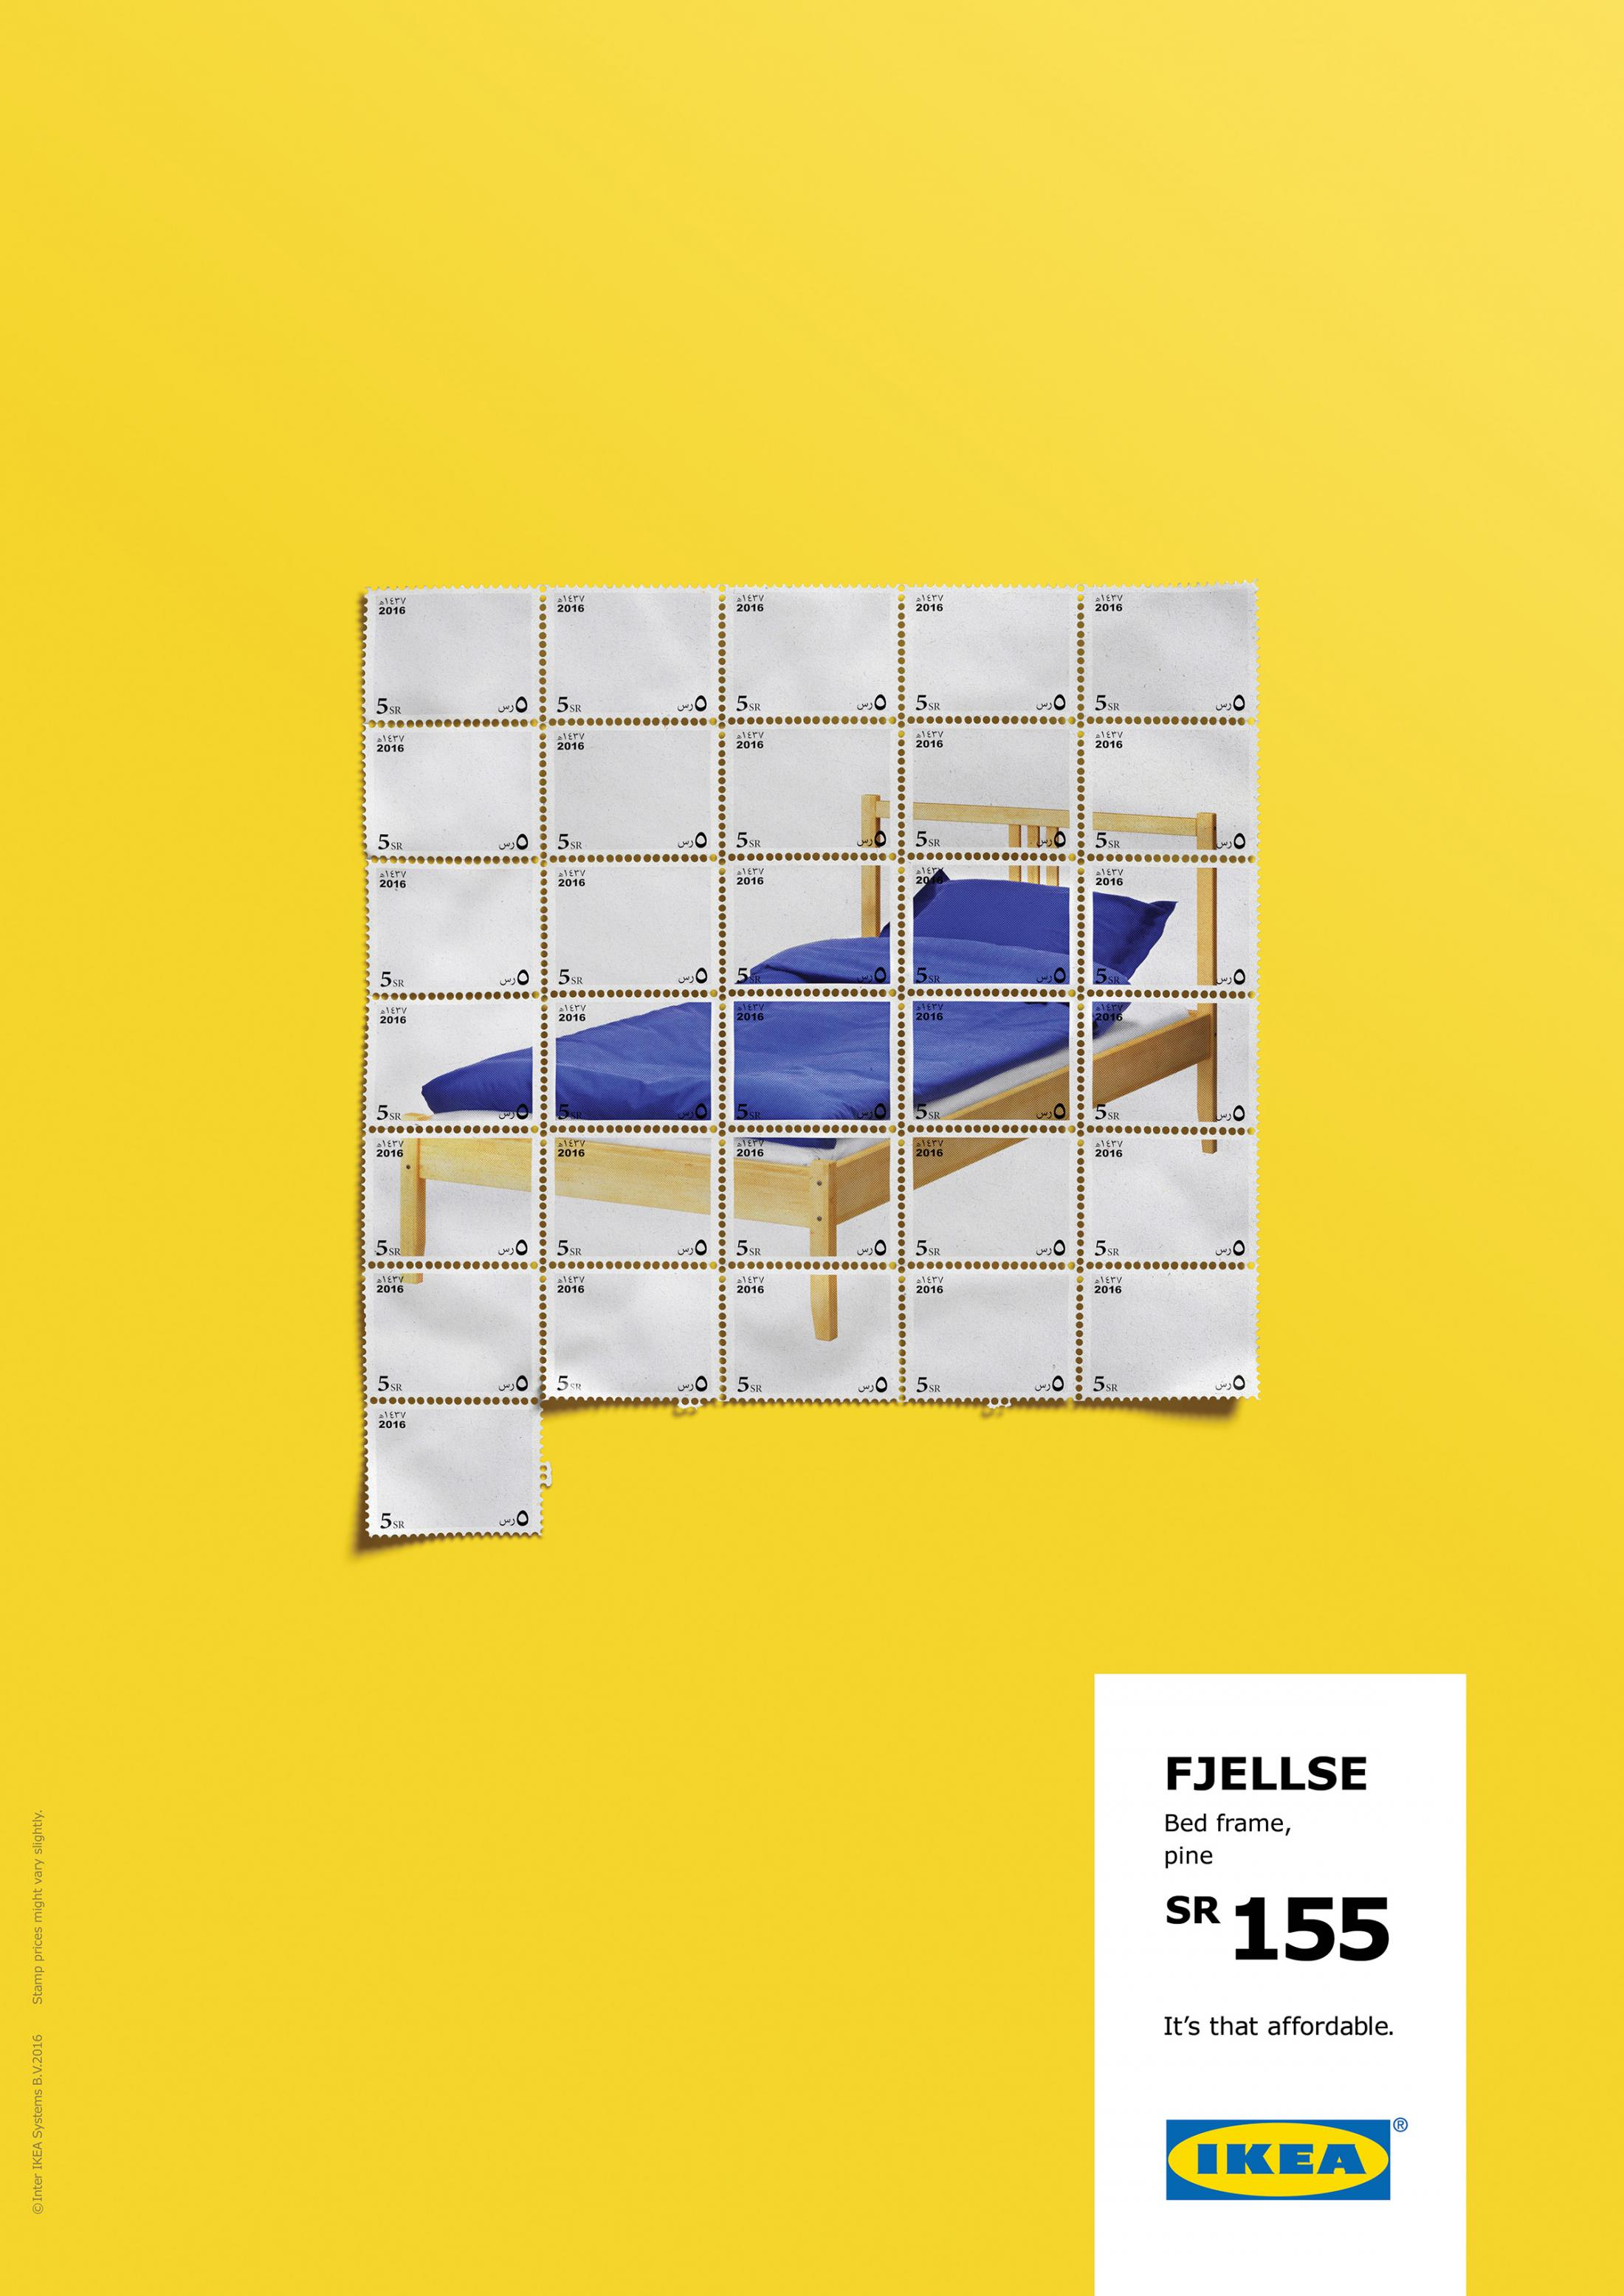 Image Media for IKEA. It's that affordable.